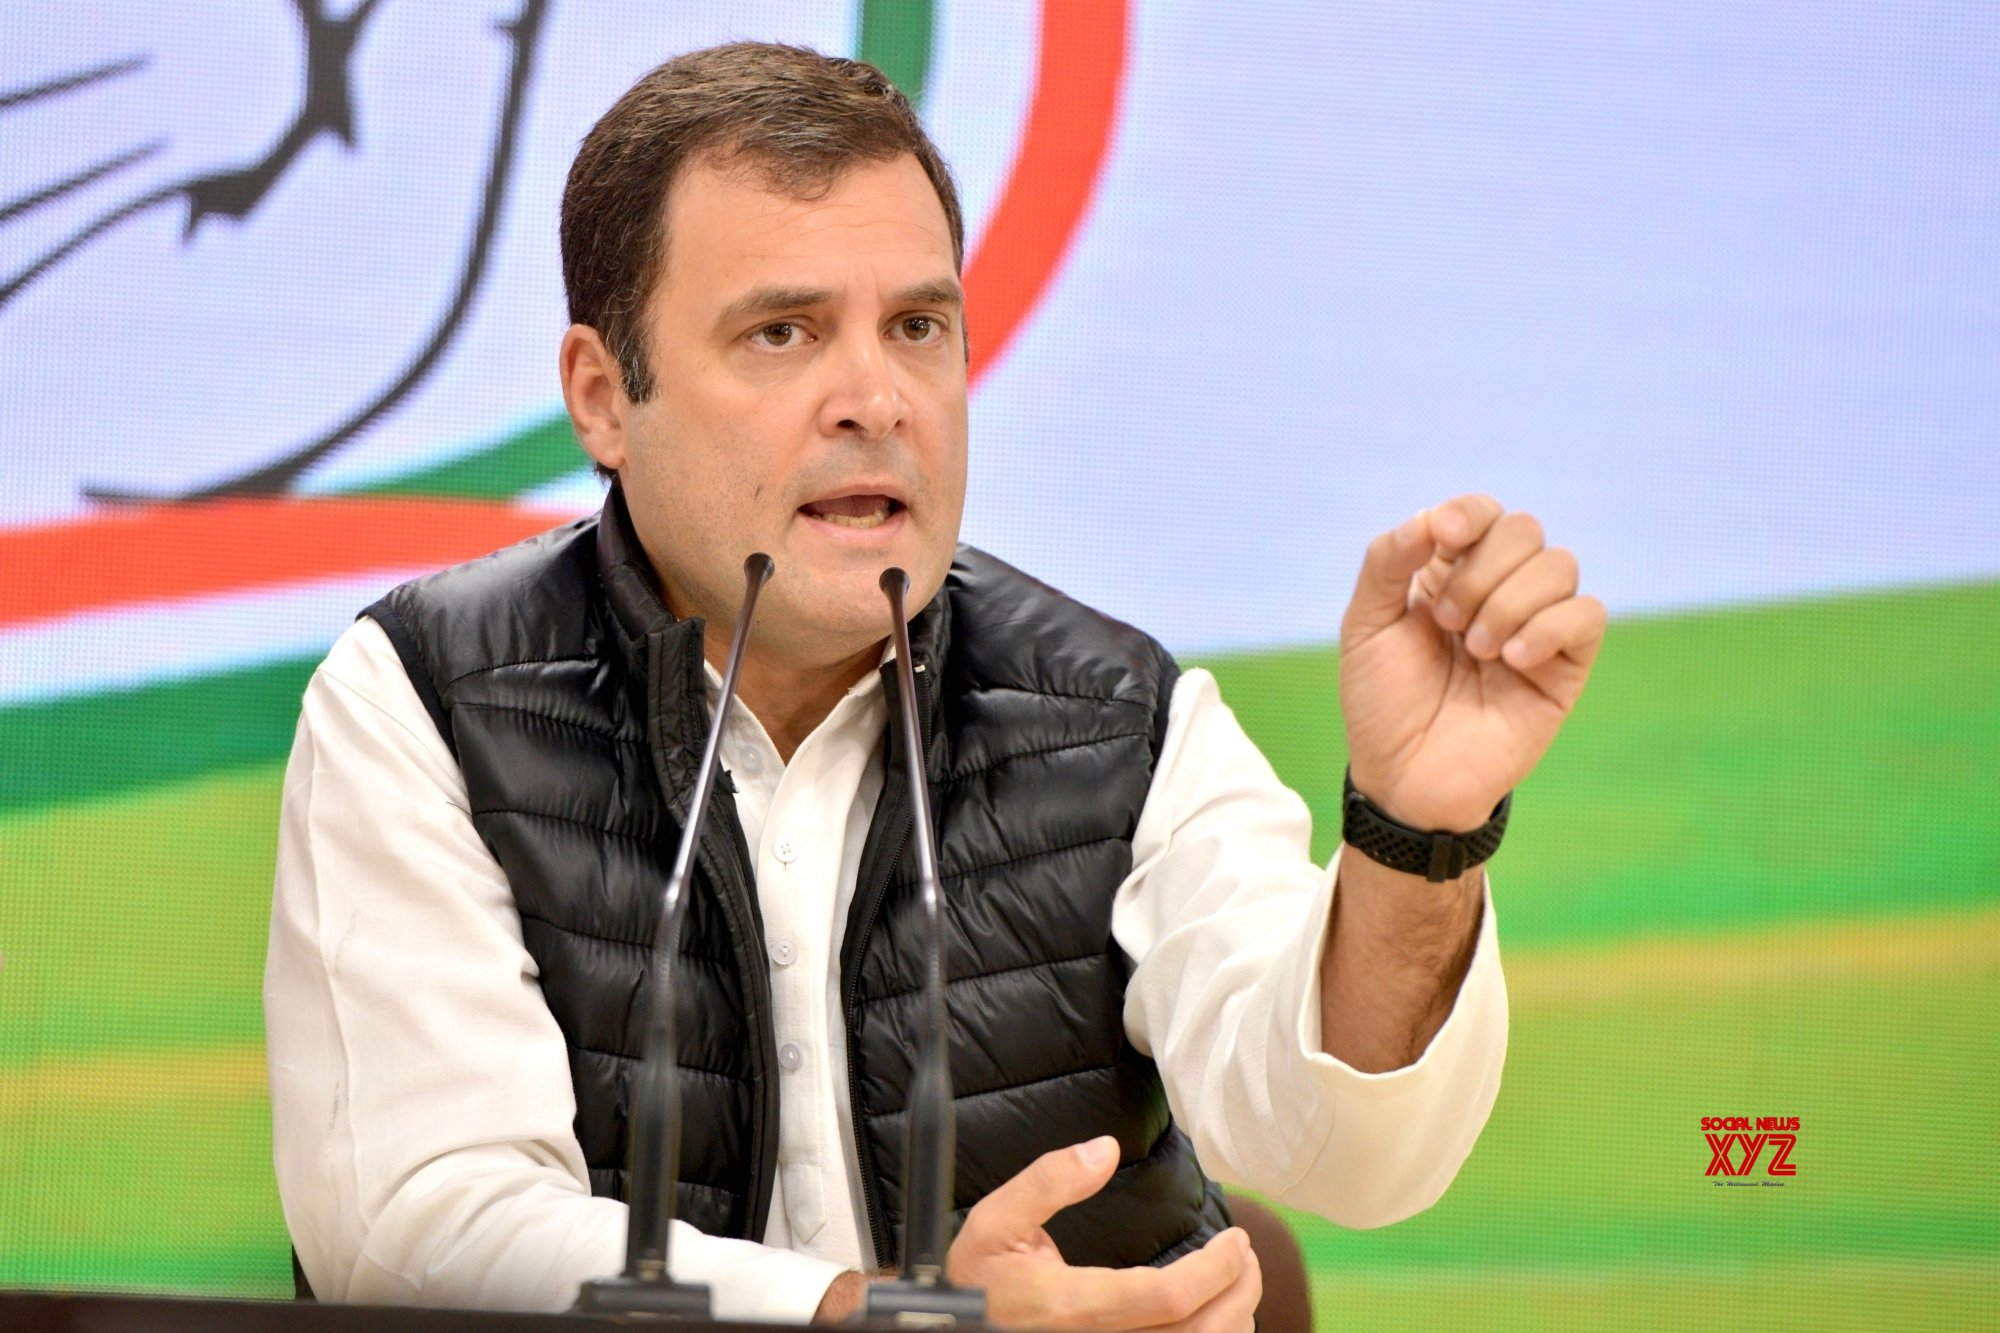 Himachal Congress to protest over 'slur' against Rahul